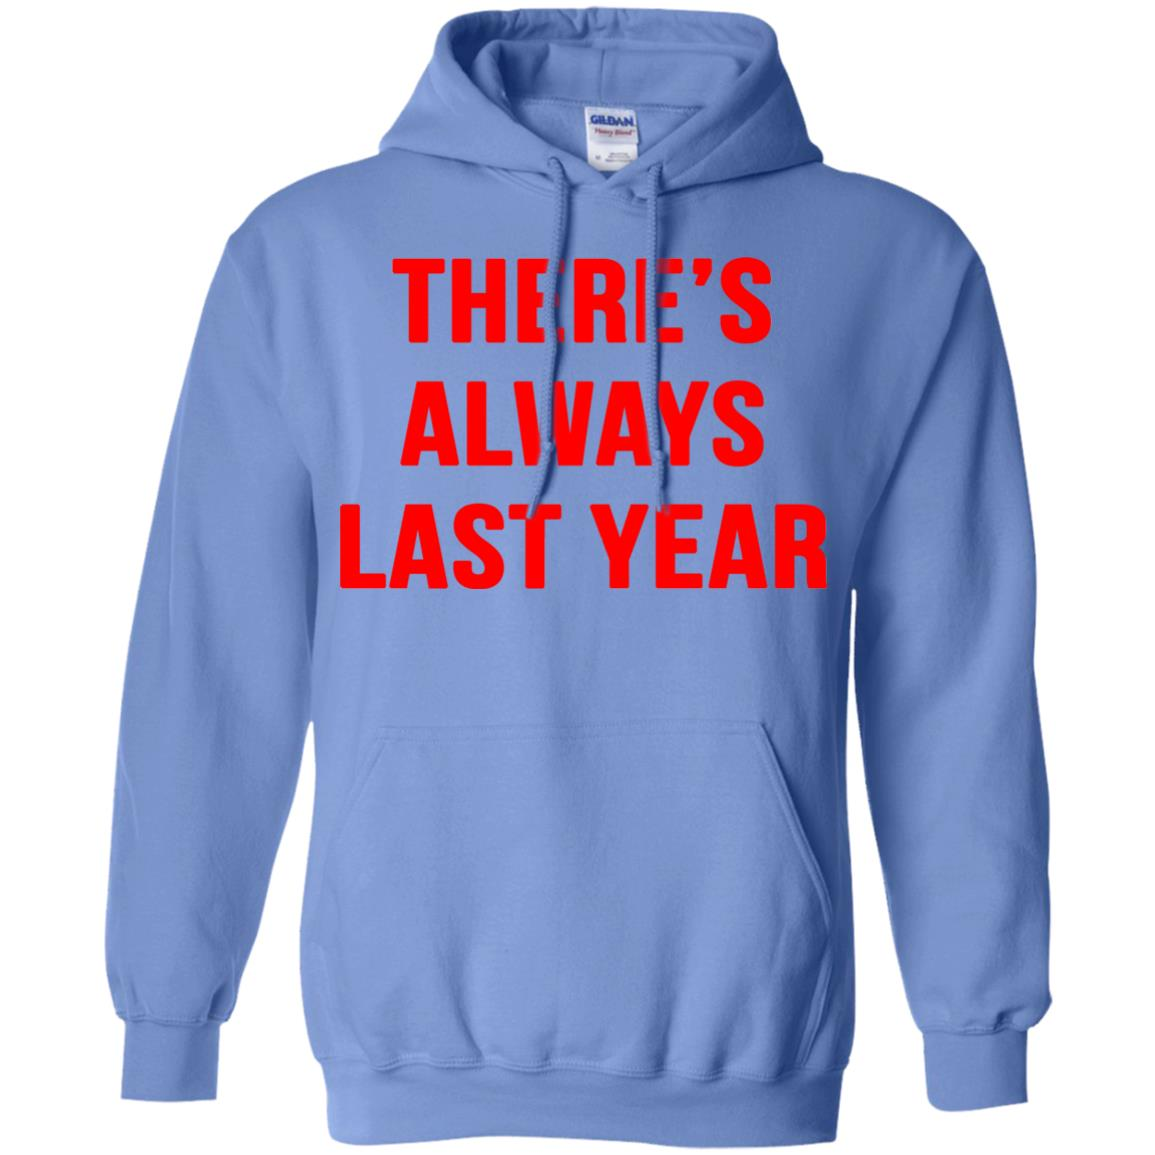 image 1921 - There's always last year t-shirt, long sleeve